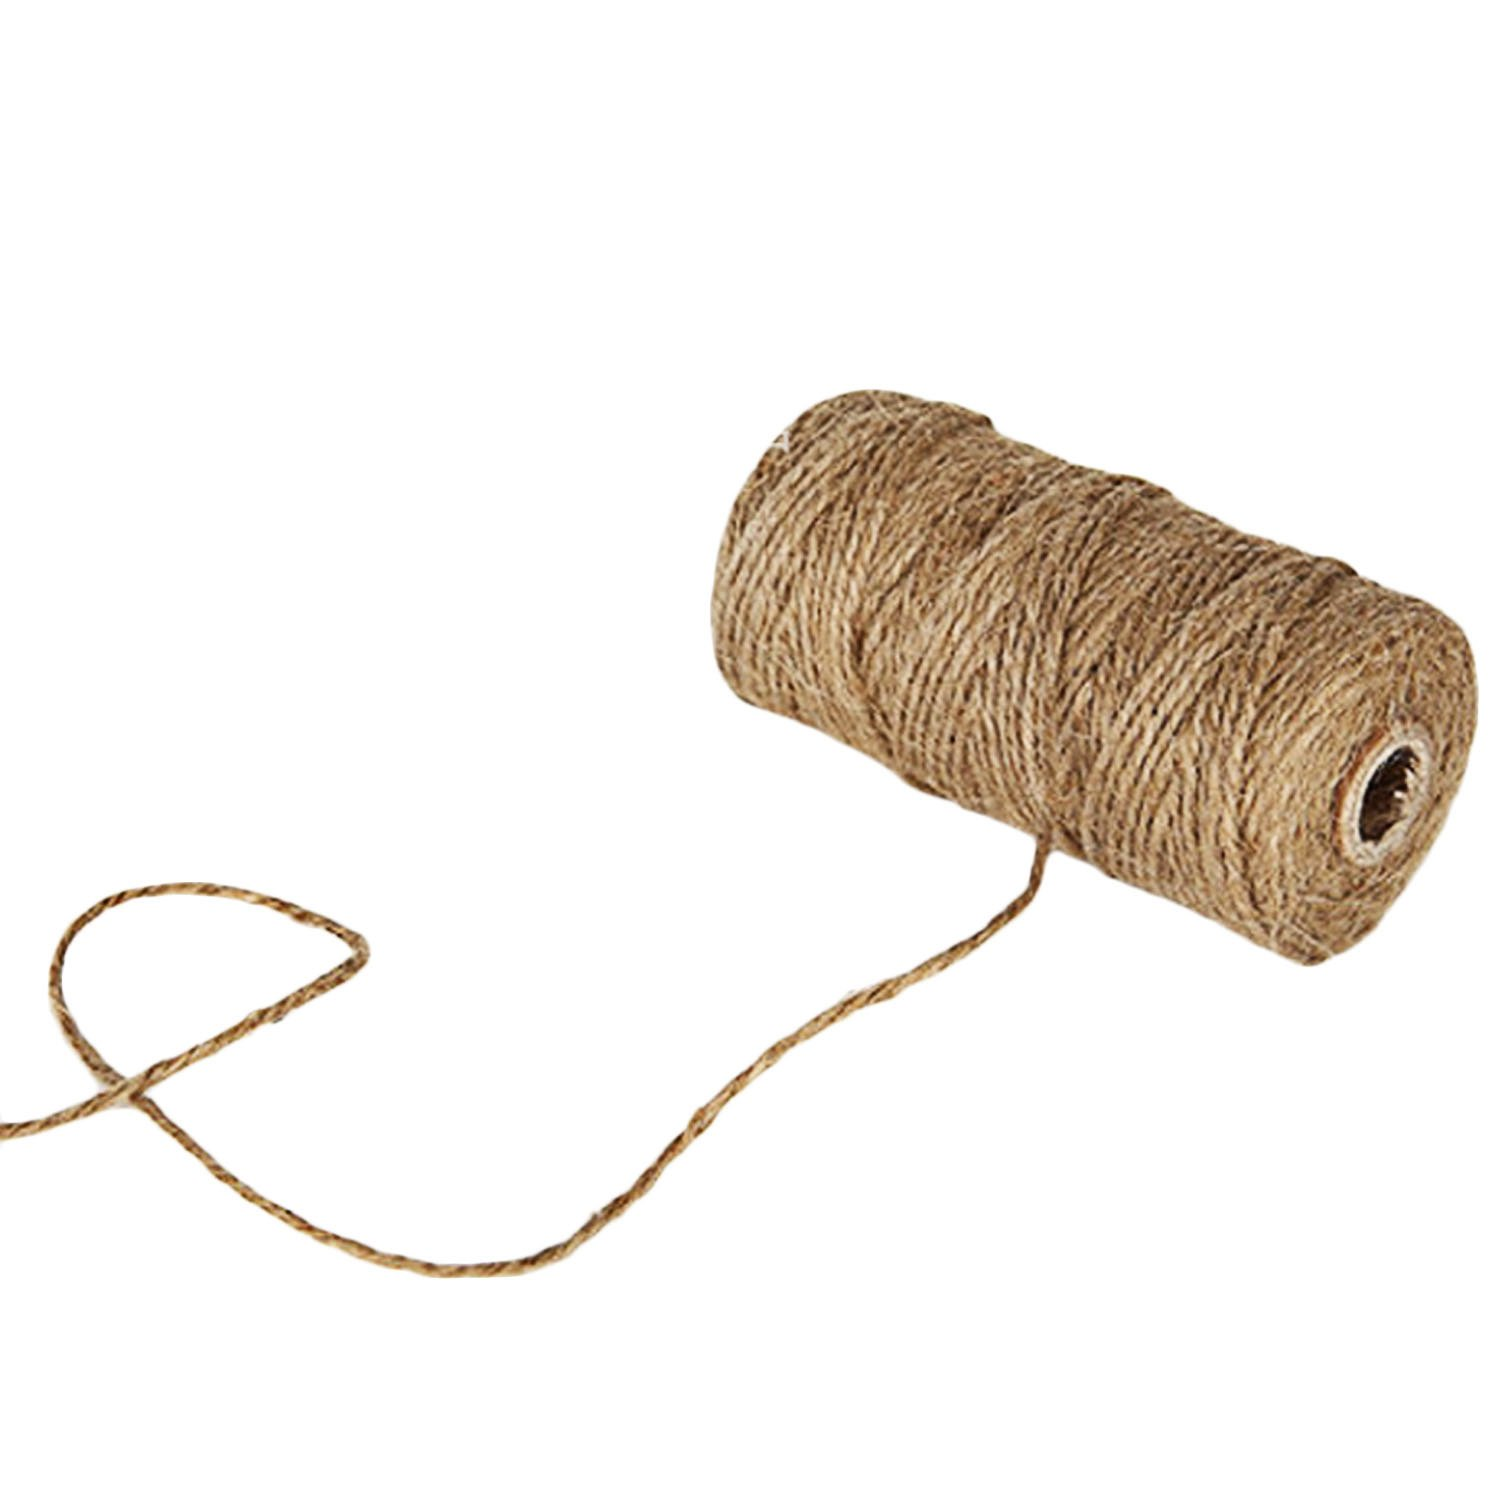 50 PCs//mini pinces photo pour Suspension photo//cadeau demballage//d/écoration festive//applications de jardinage Corde Photo 1 Rouleau Ficelle de Jute de 100M